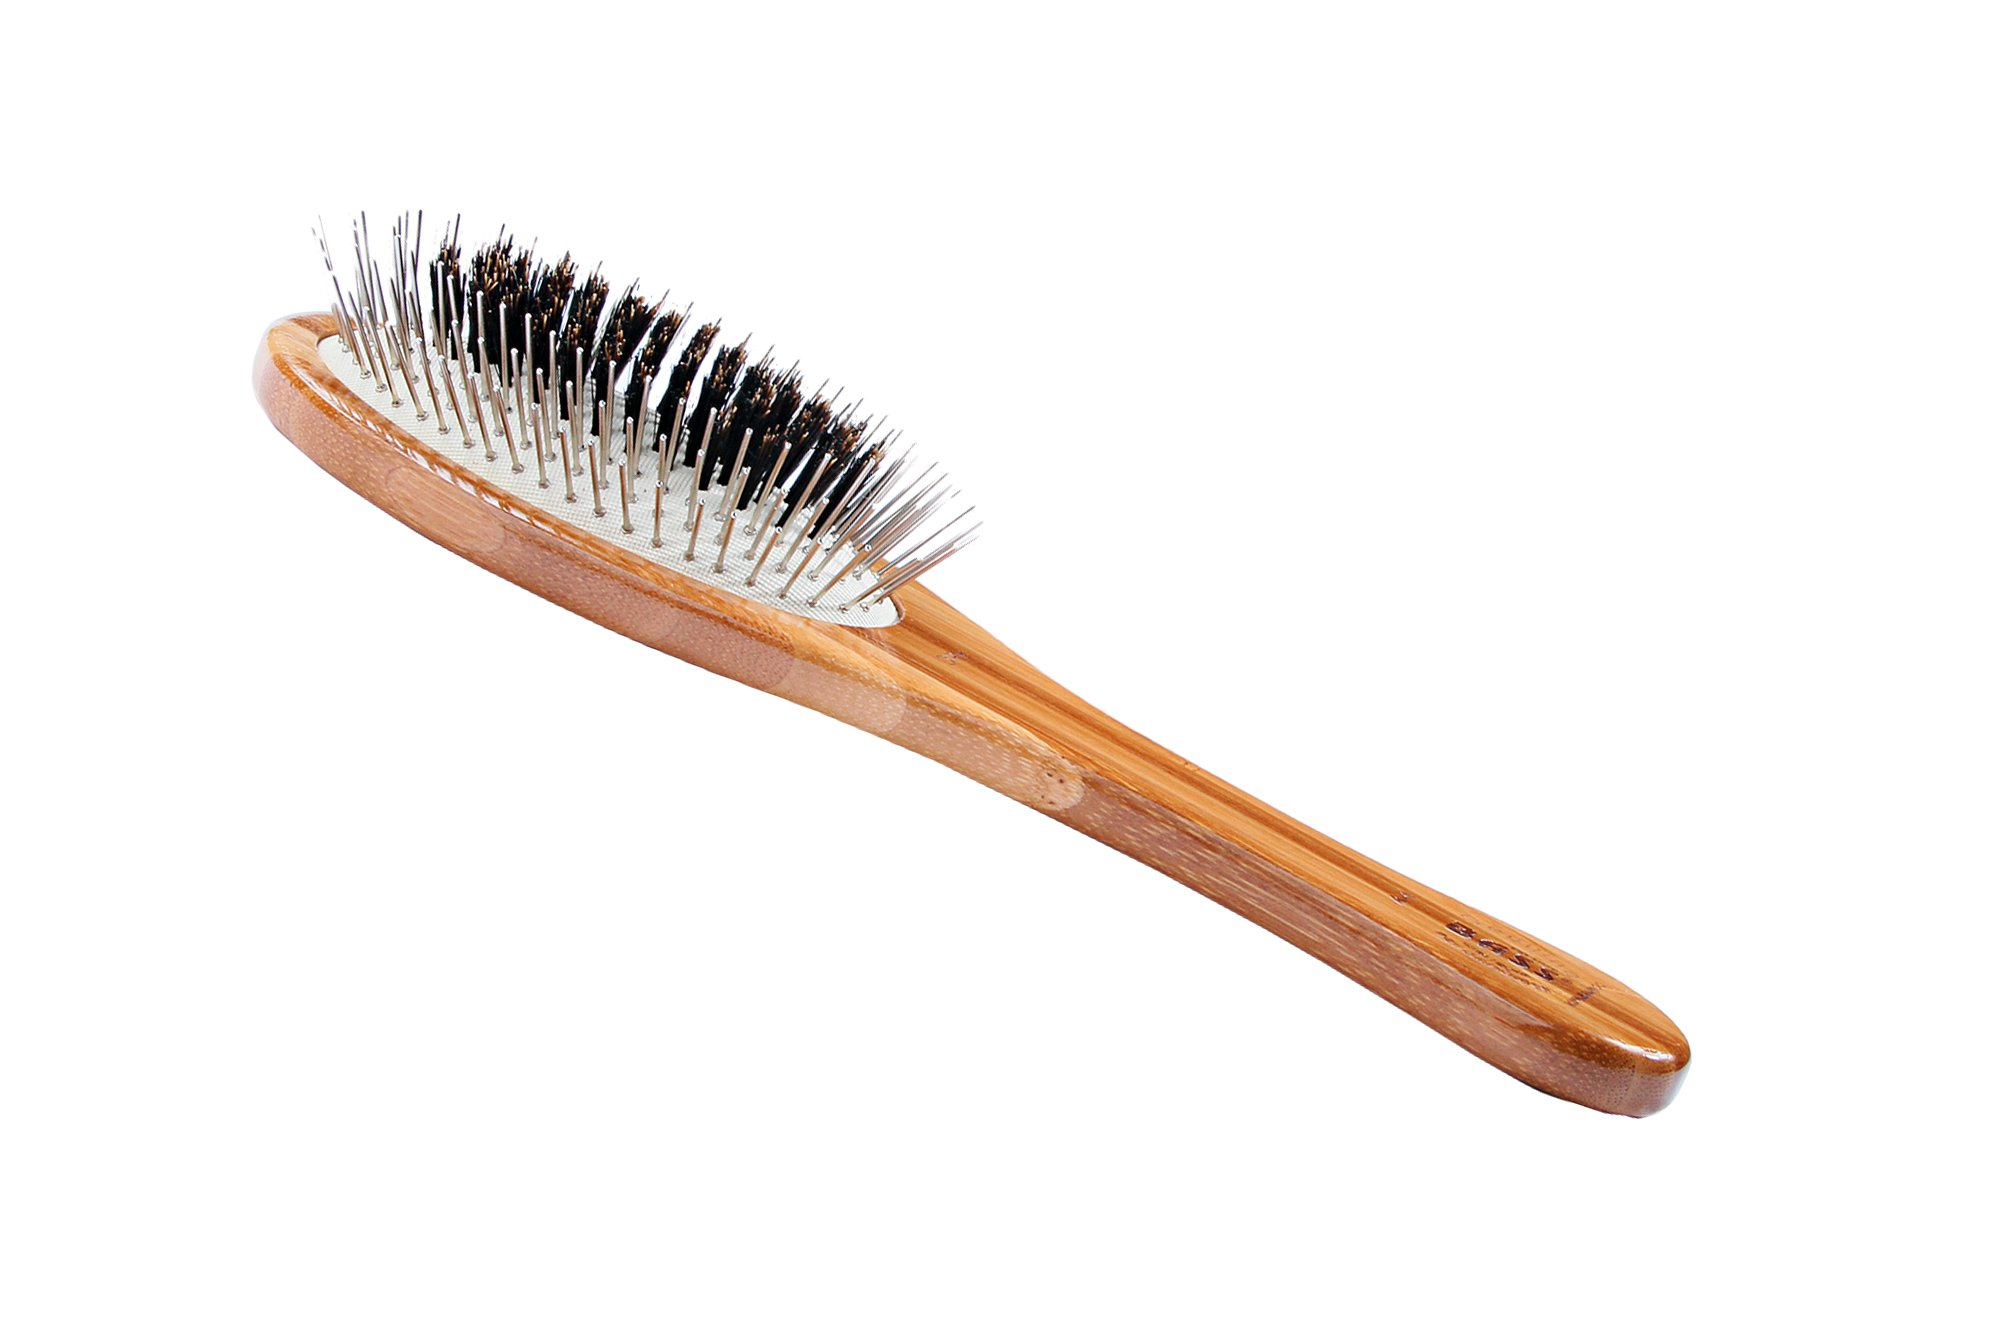 Bass Brushes Medium Oval Wire and Boar Pet Brush with Bamboo Wood Handle